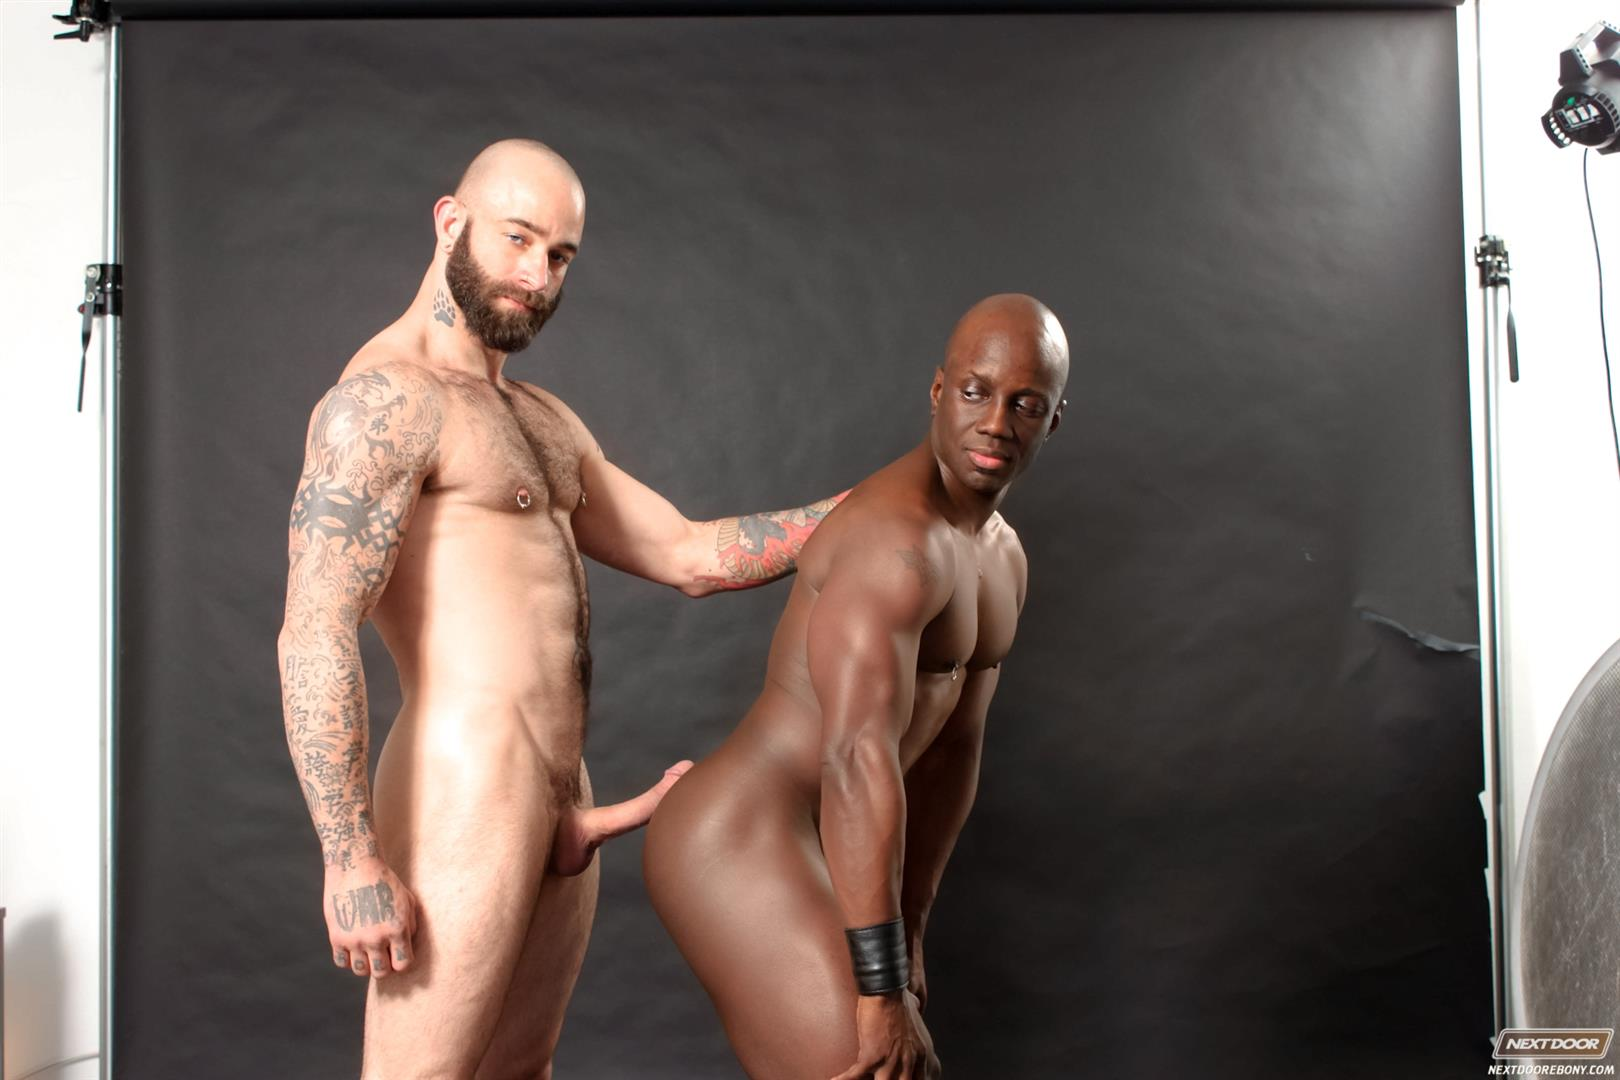 Next-Door-Ebony-Sam-Swift-and-Jay-Black-Interracial-White-Guy-Fucking-A-Black-Guy-Amateur-Gay-Porn-15 Hung Amateur Black Guy Takes A Big White Cock Up His Tight Ass